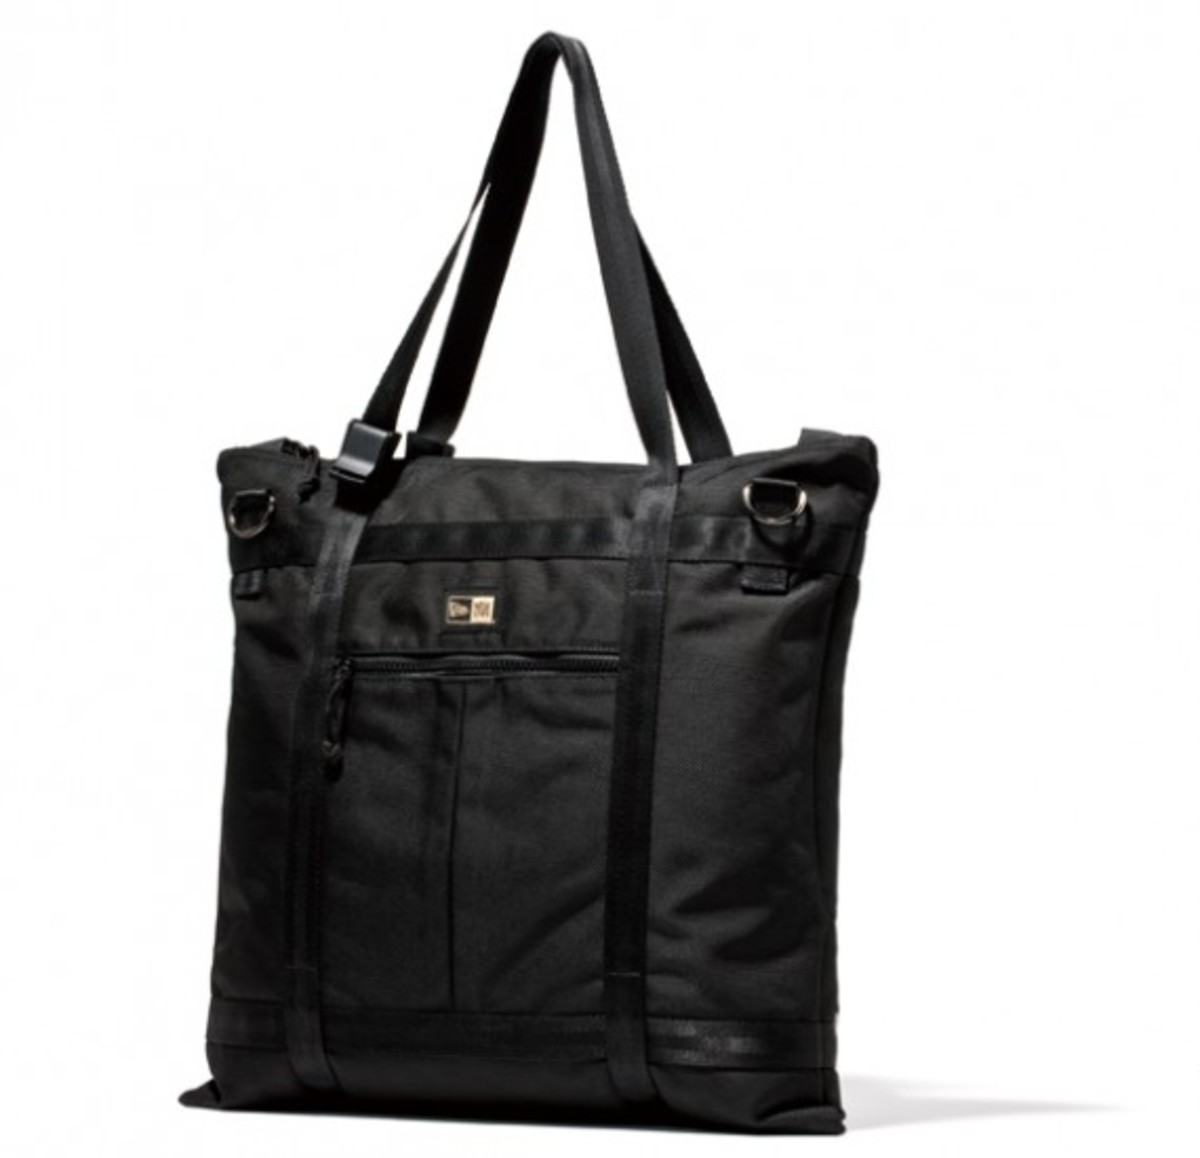 new-era-4-way-tote-bag-01